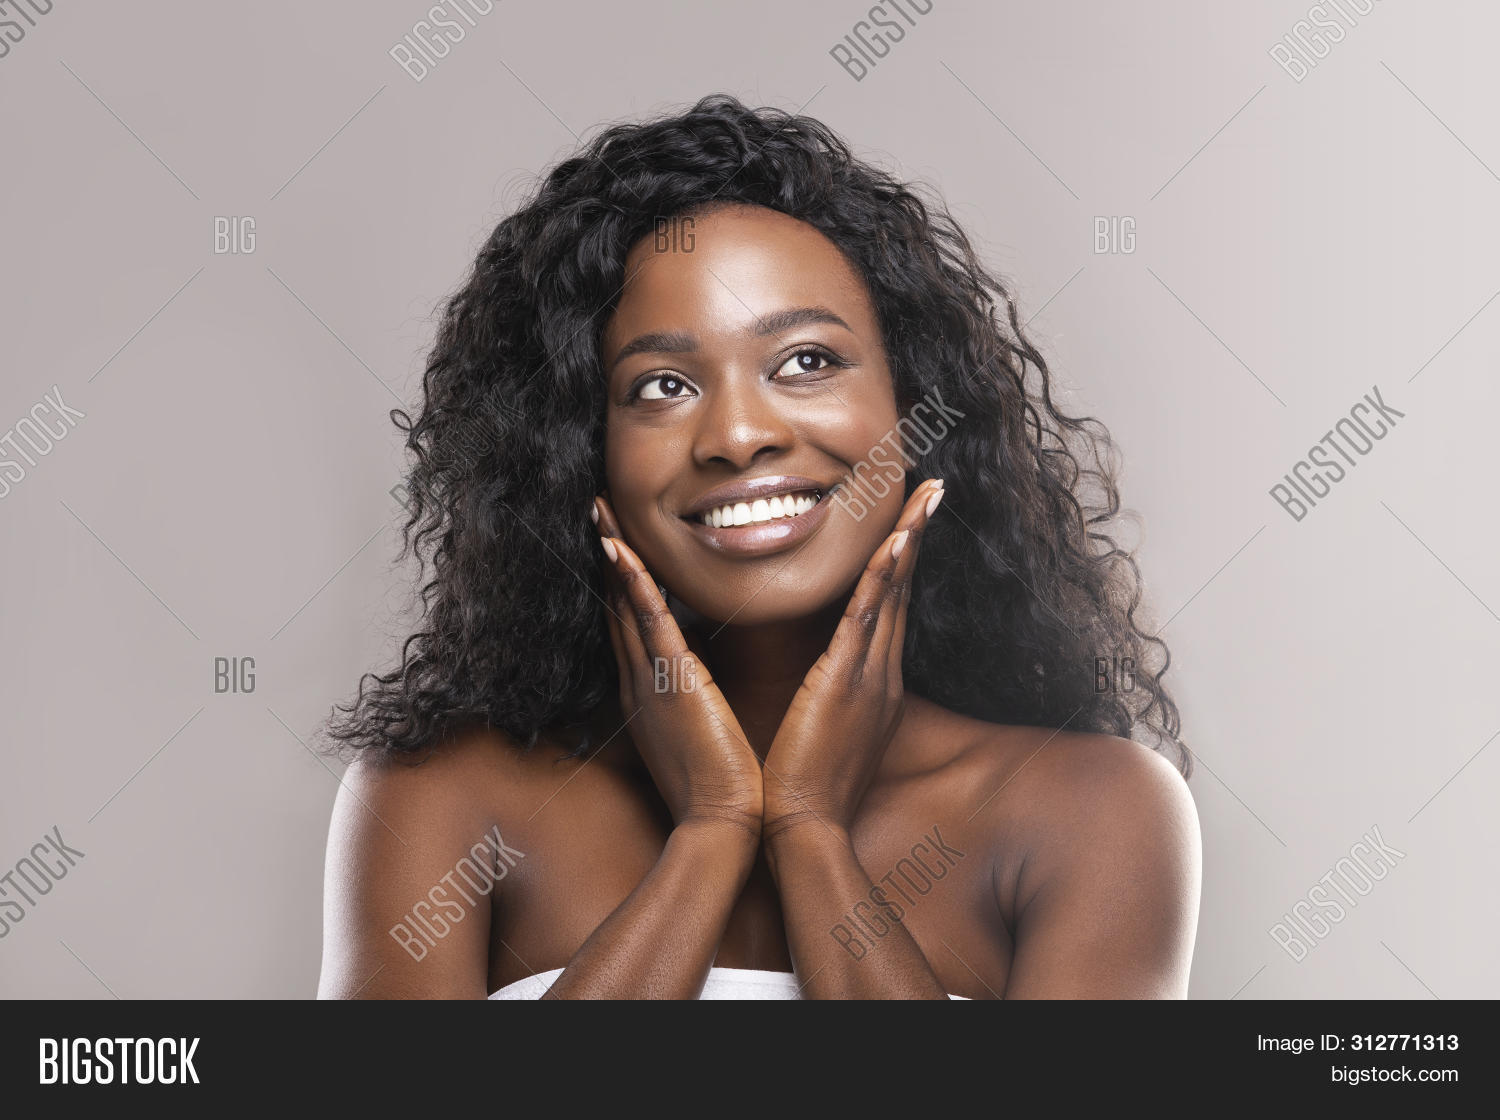 adult,afro,application,apply,applying,attractive,background,beautiful,beauty,black,body,care,cheek,clean,concept,cosmetic,cream,face,facial,female,feminine,fresh,girl,hand,healthcare,healthy,lotion,model,moisturize,moisturizer,pampering,perfect,pleasure,portrait,posing,relax,skin,skincare,smooth,soft,spa,touch,touching,treatment,wellness,woman,young,youth